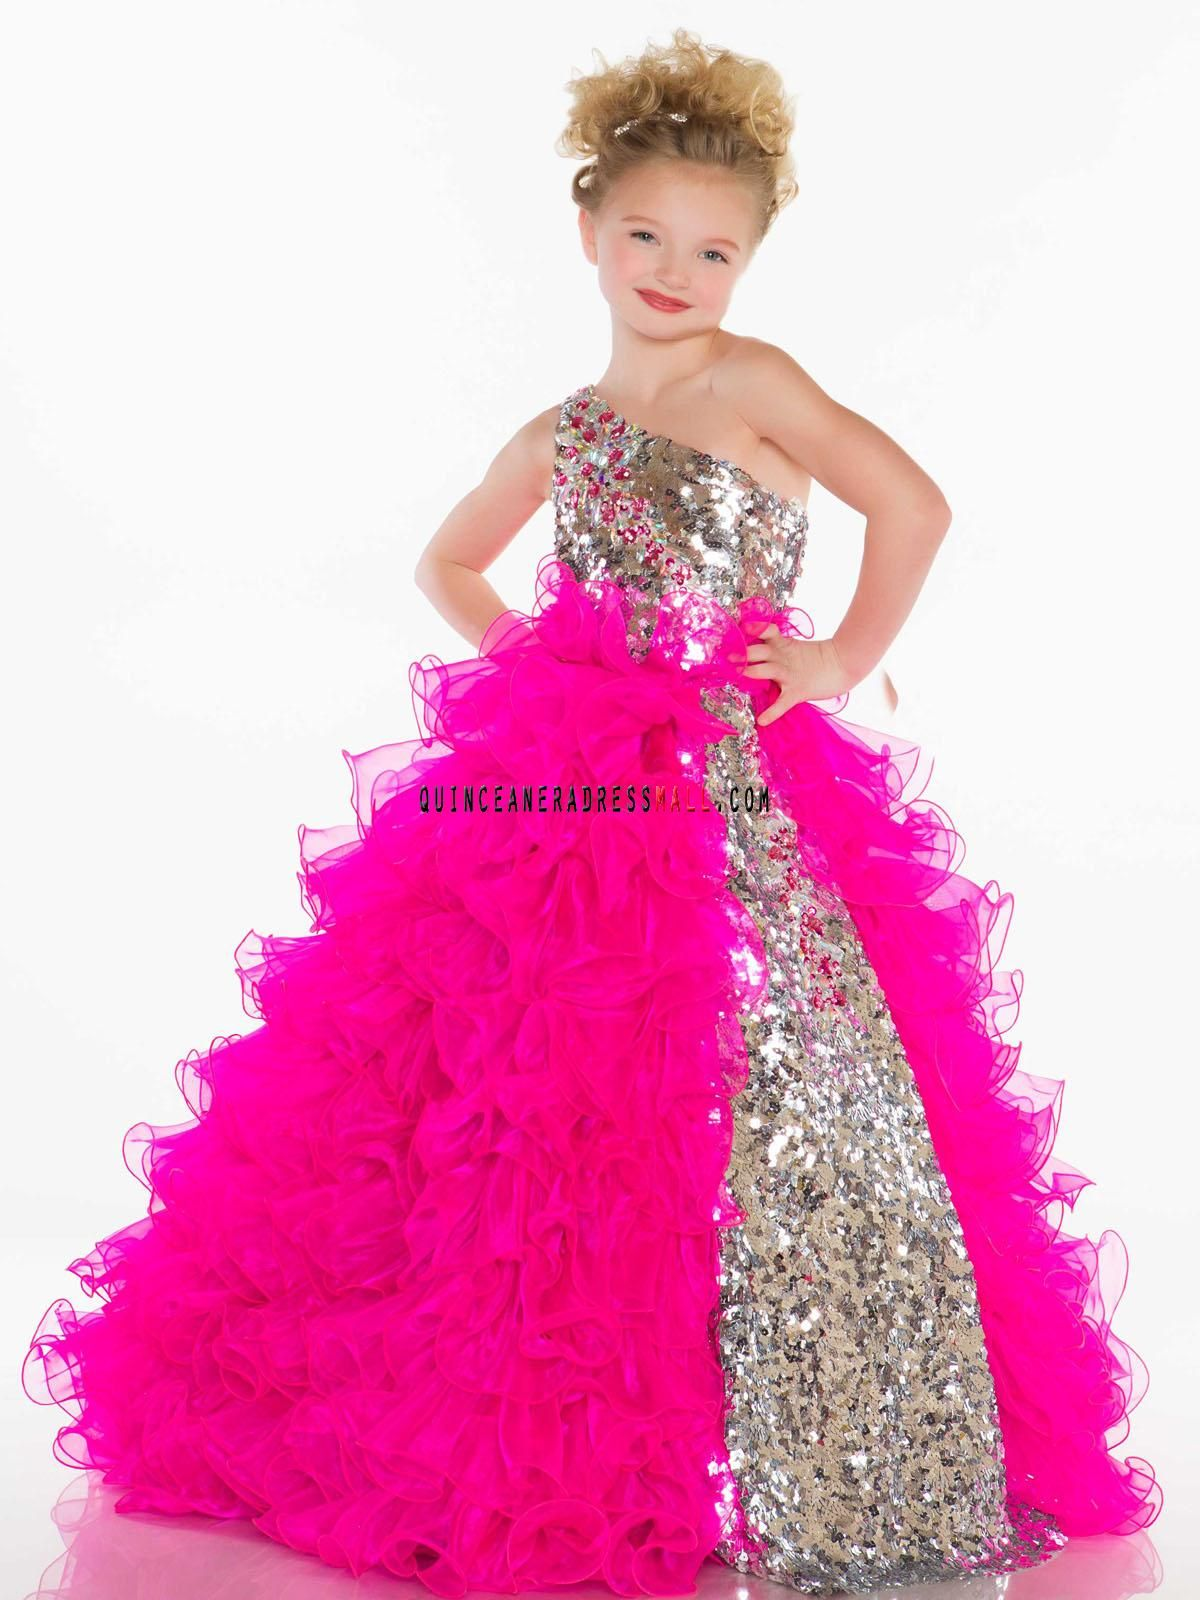 2014 NEW ADORABLE SEQUINED BALL GOWN WITH RUFFLE DETAIL LITTLE GIRL ...